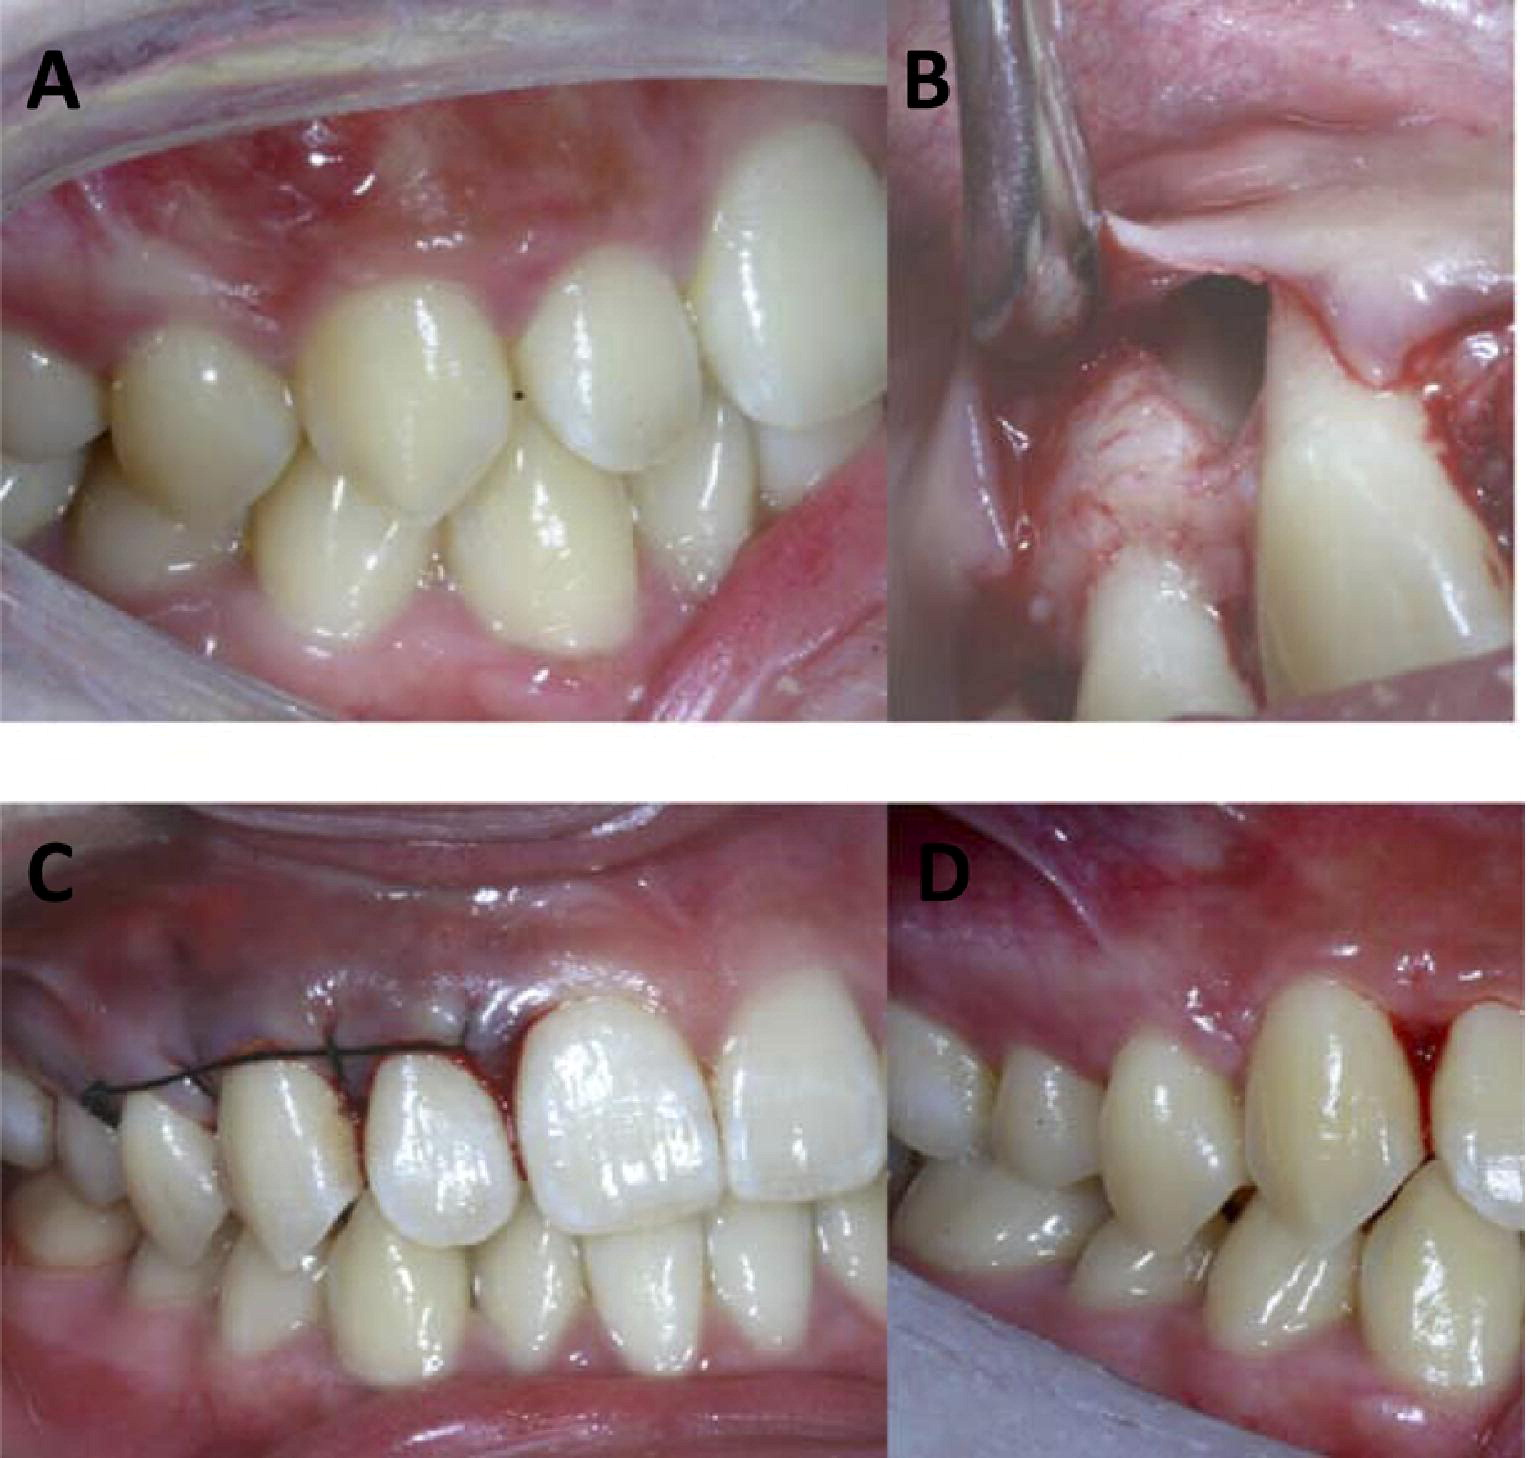 uncommon fusion of teeth and lateral periodontal cyst in a